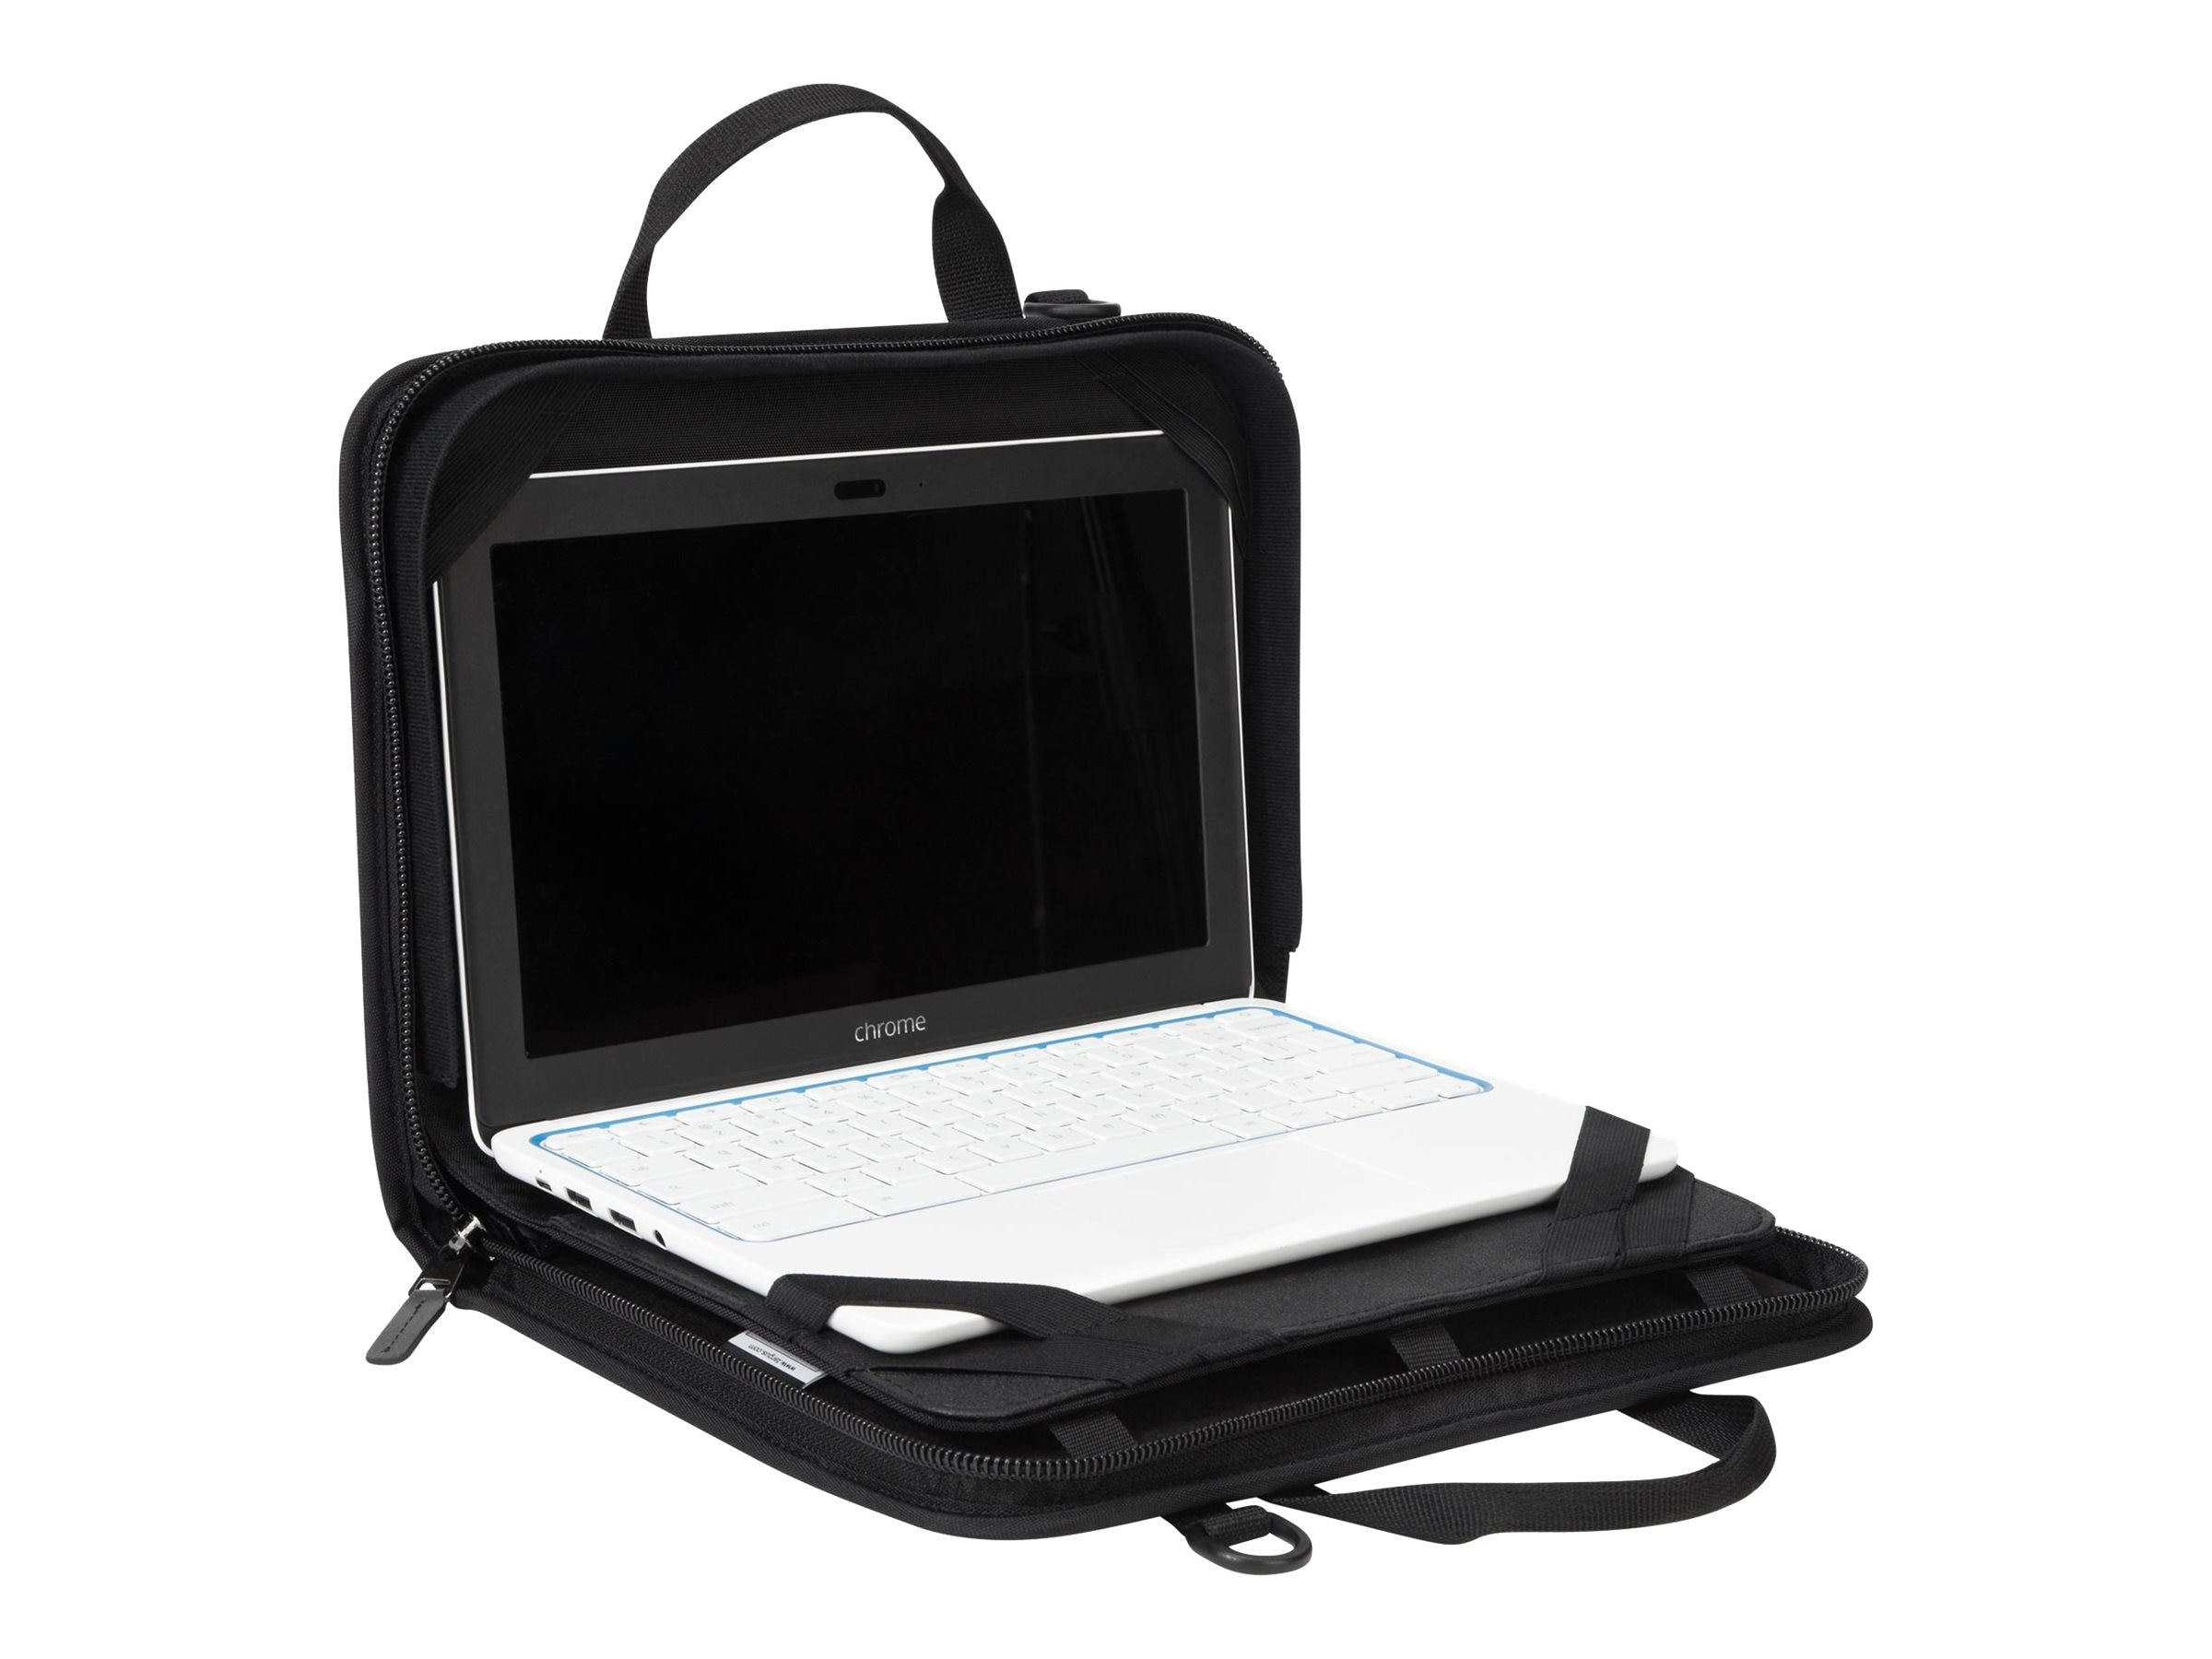 Targus Rugged Chromebook Lift Work-In Case, Black, TKC004